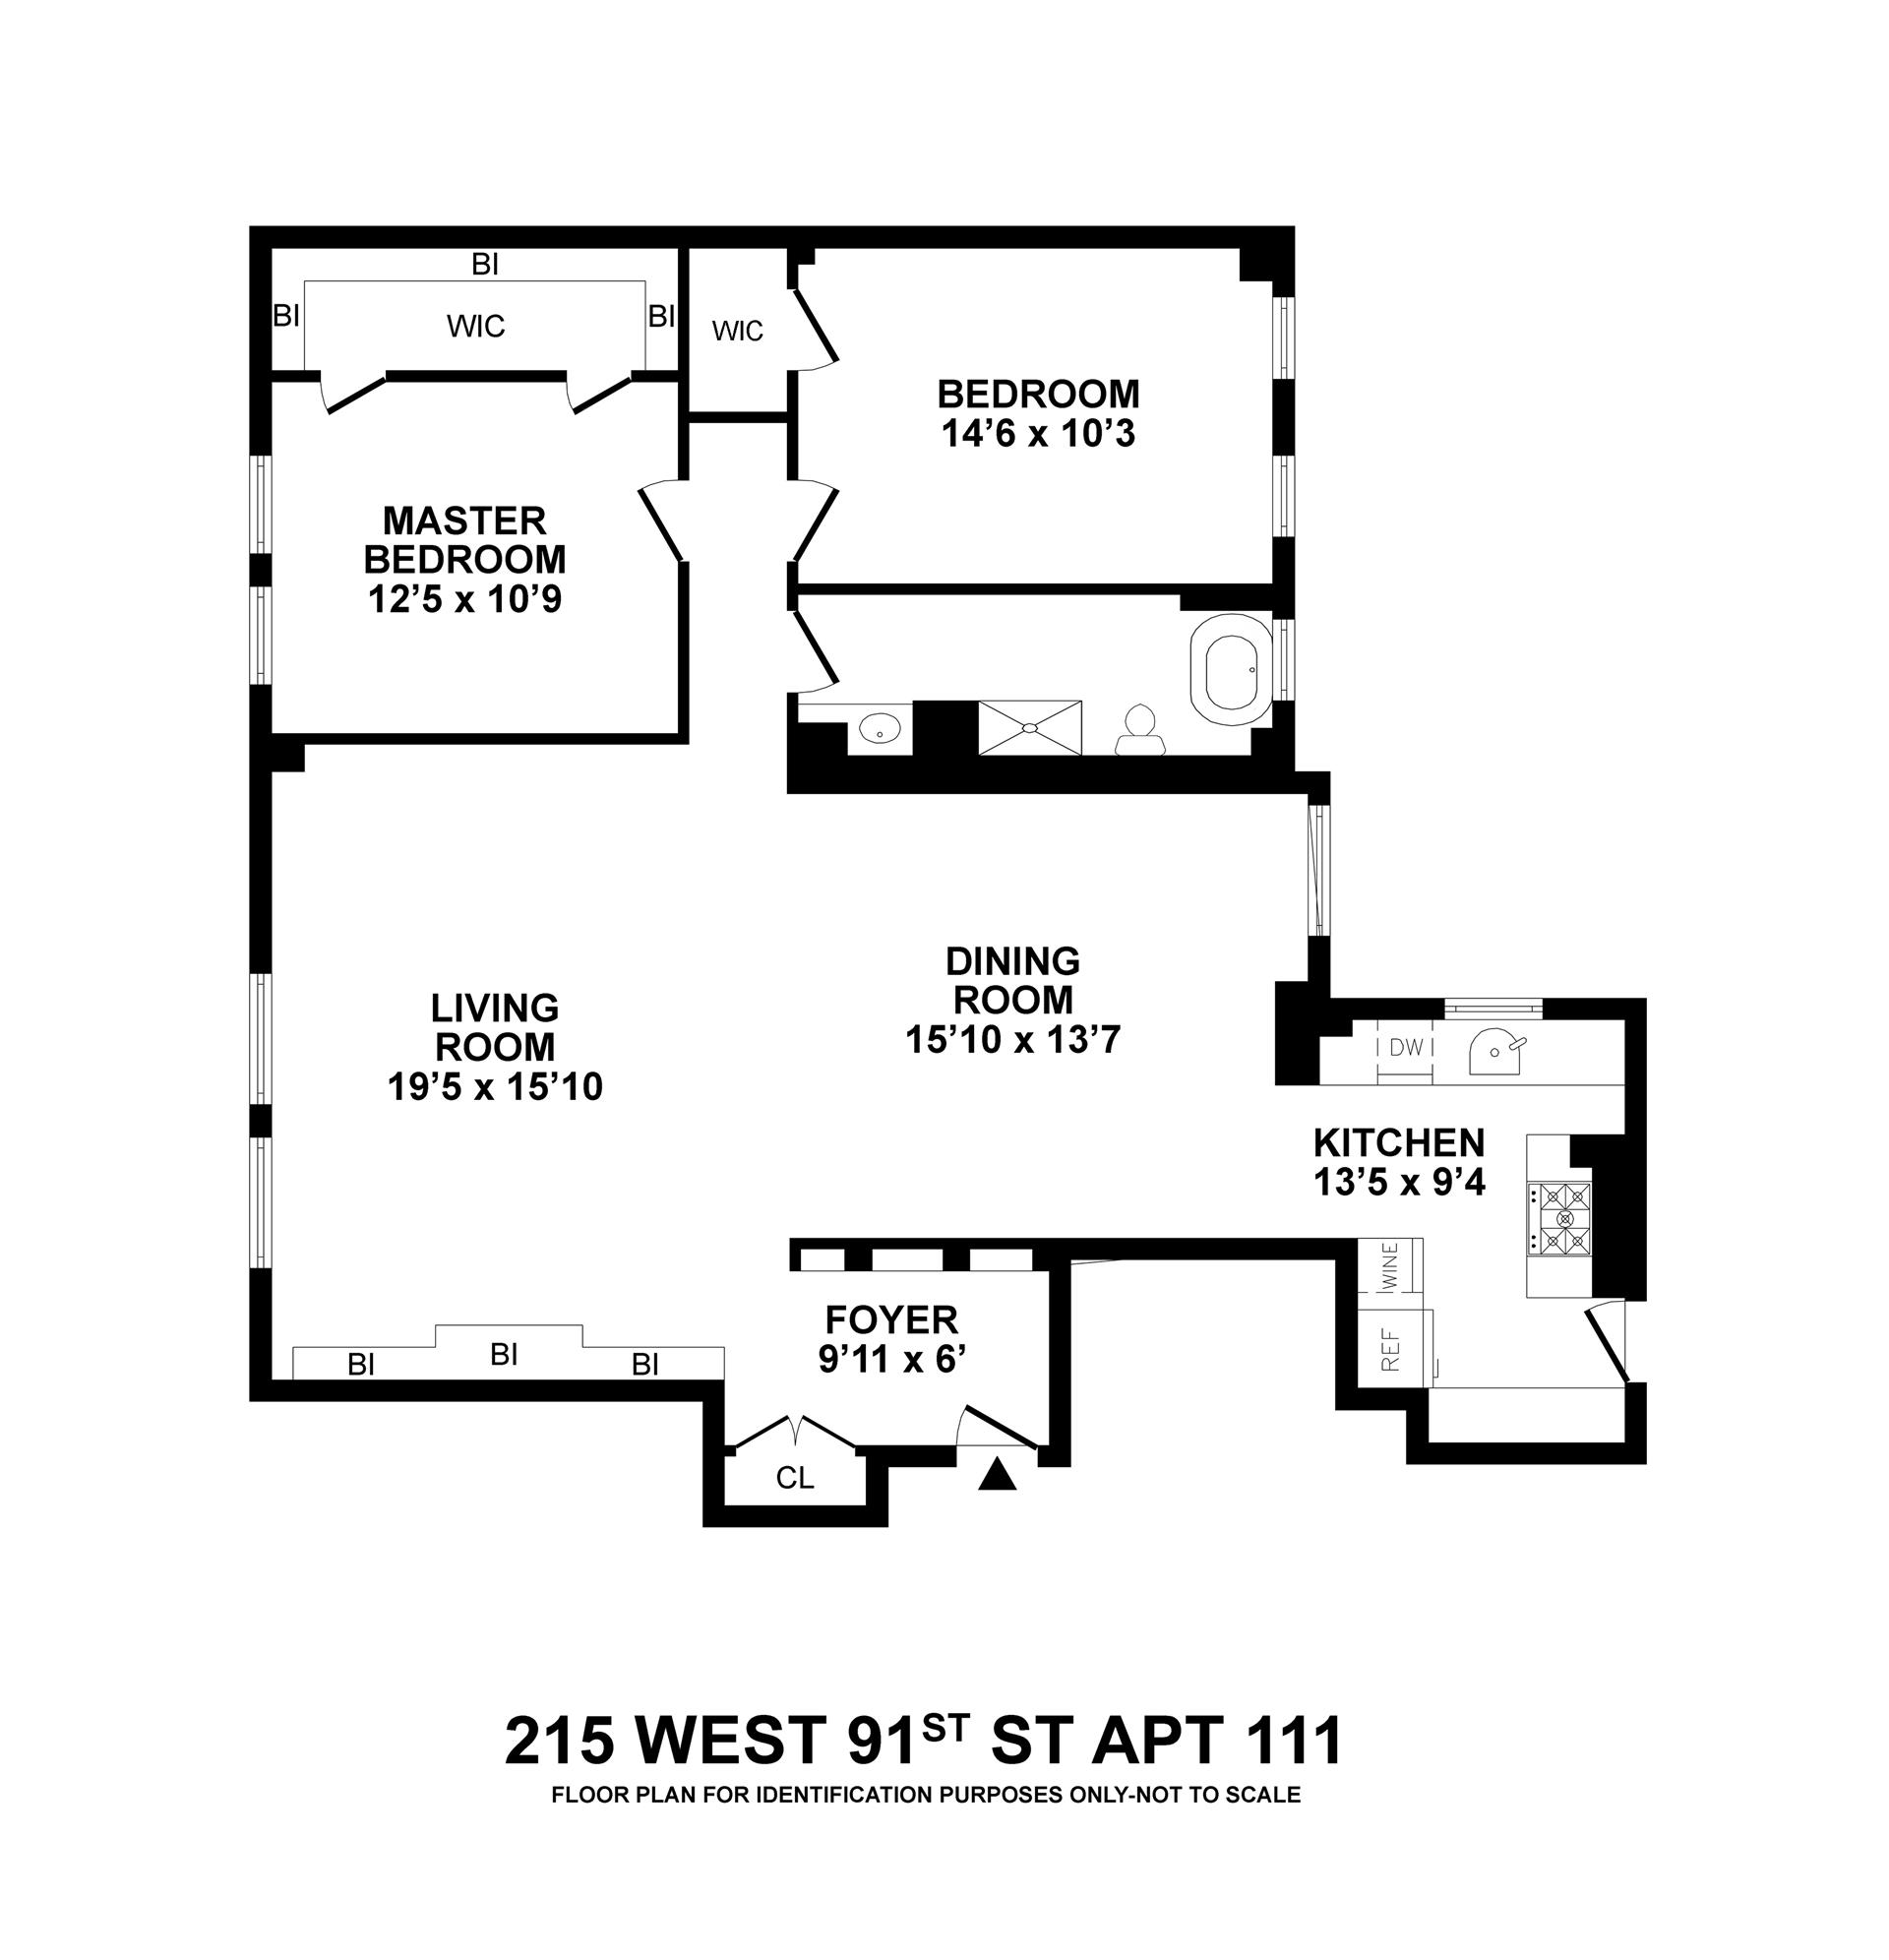 Floor plan of De Soto, 215 West 91st St, 111 - Upper West Side, New York